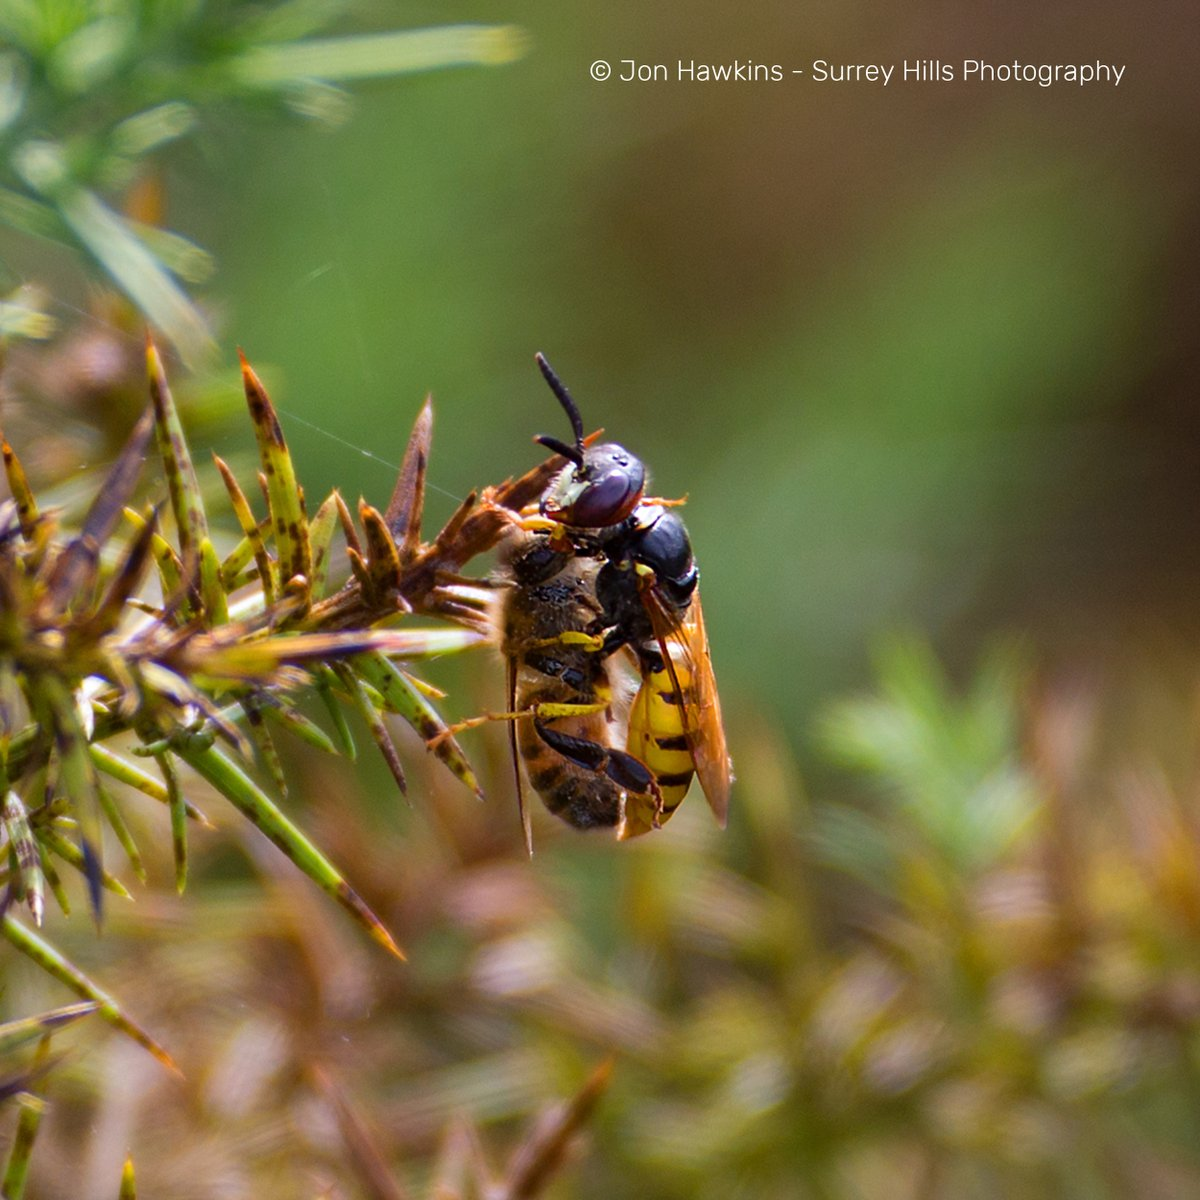 One of our largest and most impressive solitary wasps, bee wolves prey on honey bee workers. They paralyse them with a sting & carrying them back to their burrow where the wasp's larva will eat them alive when it hatches. Find them on sandy heaths like Ockham and Wisley Commons. <br>http://pic.twitter.com/nBiJzKGY3l